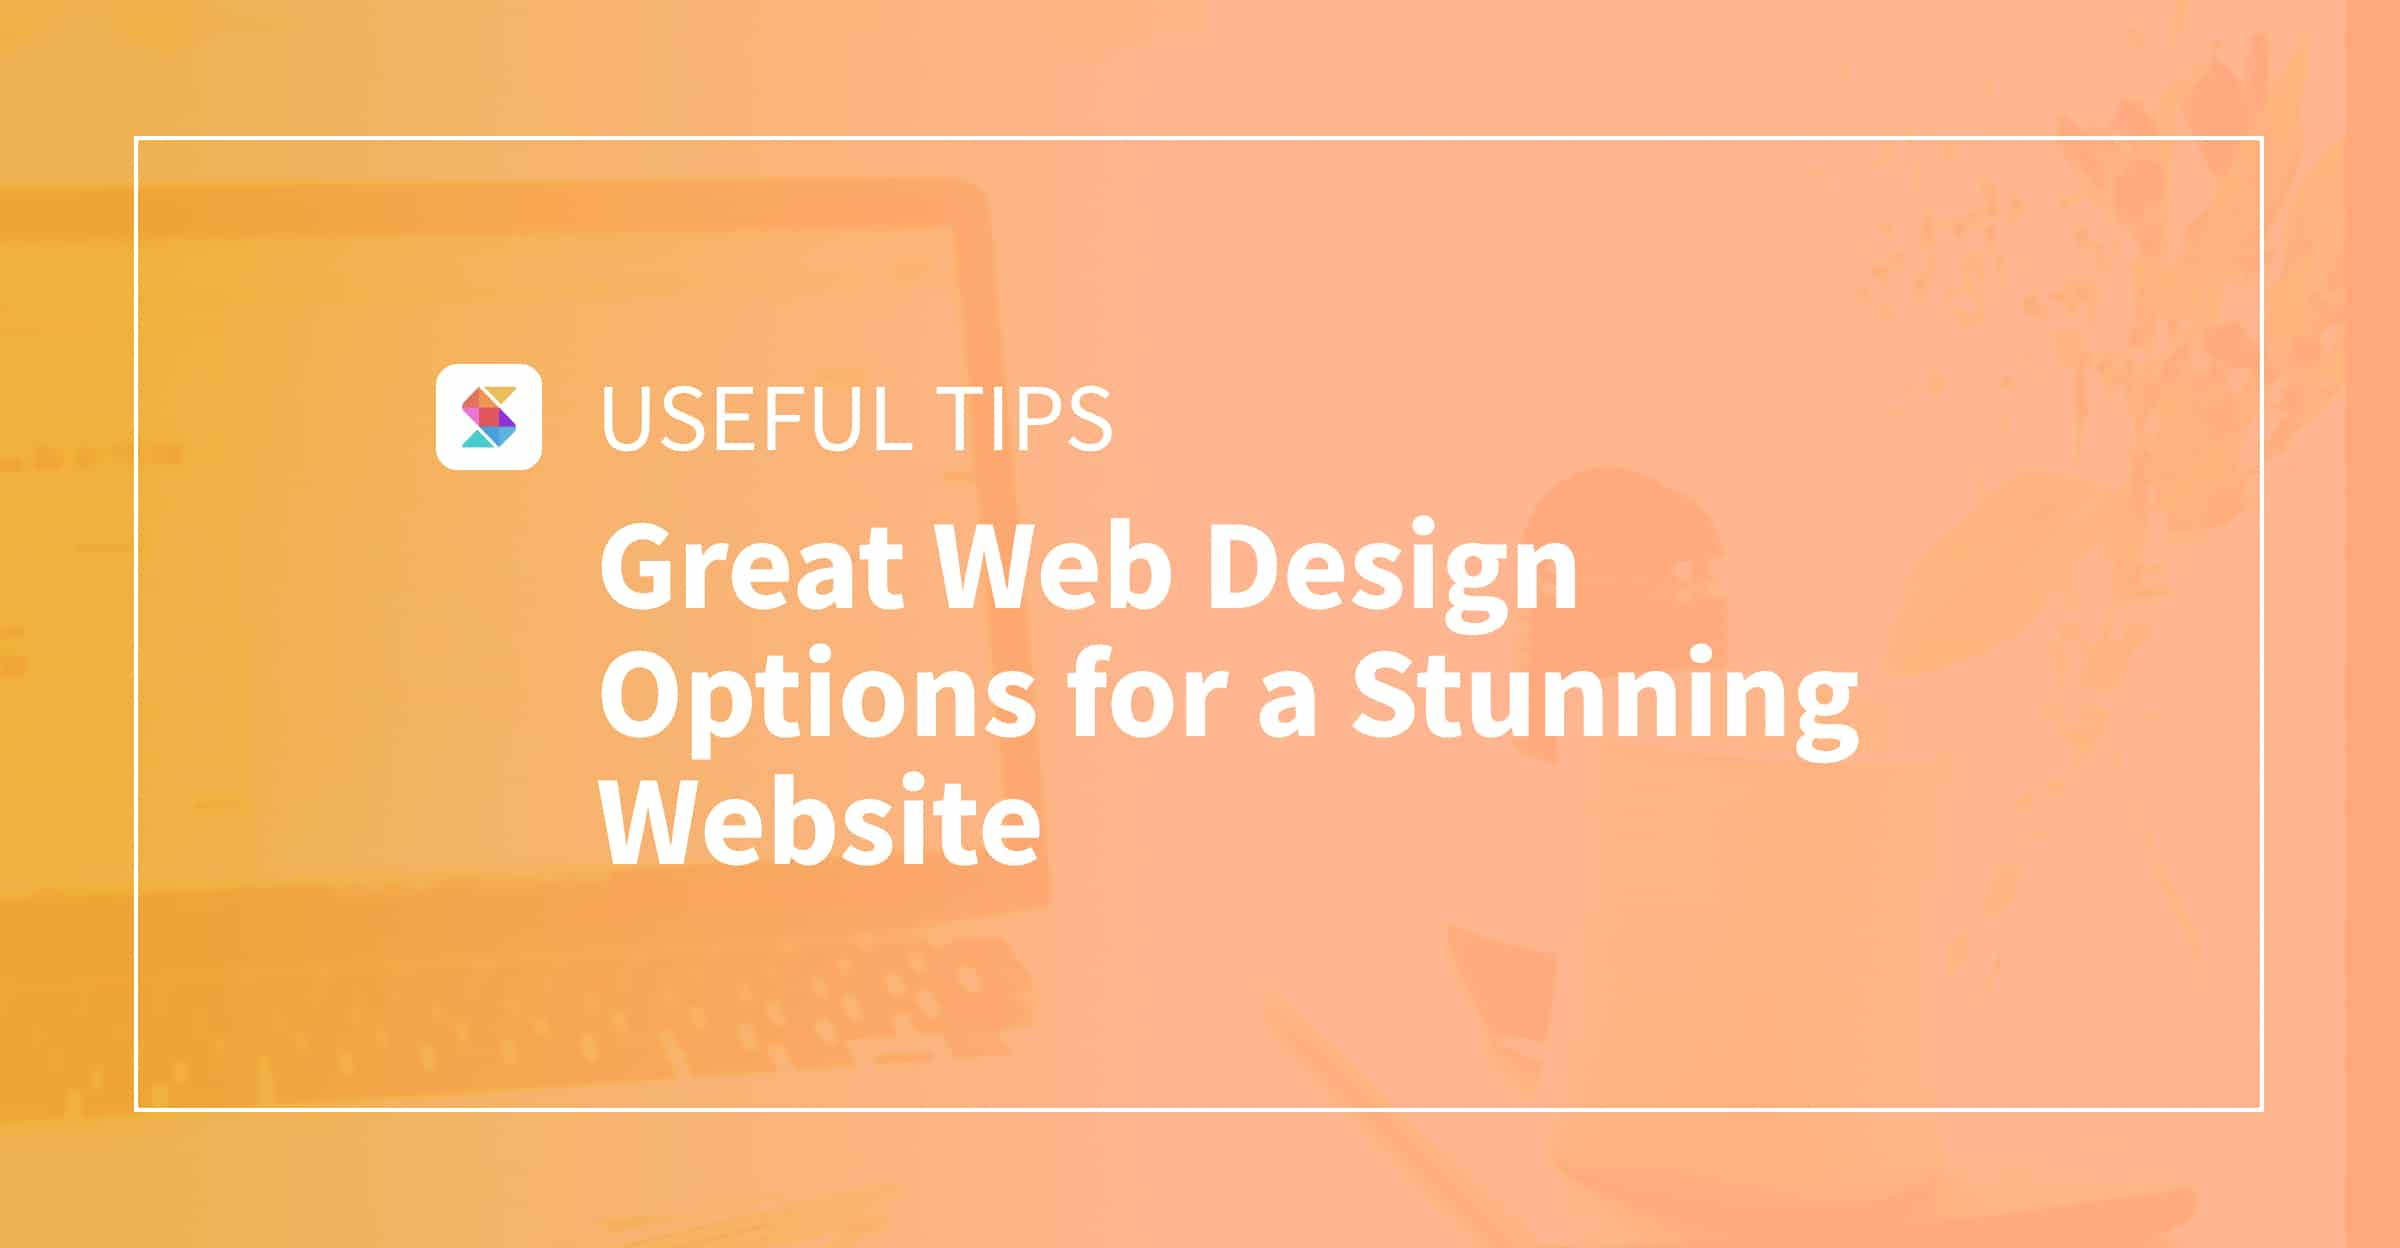 Great Web Design Options for a Stunning Website